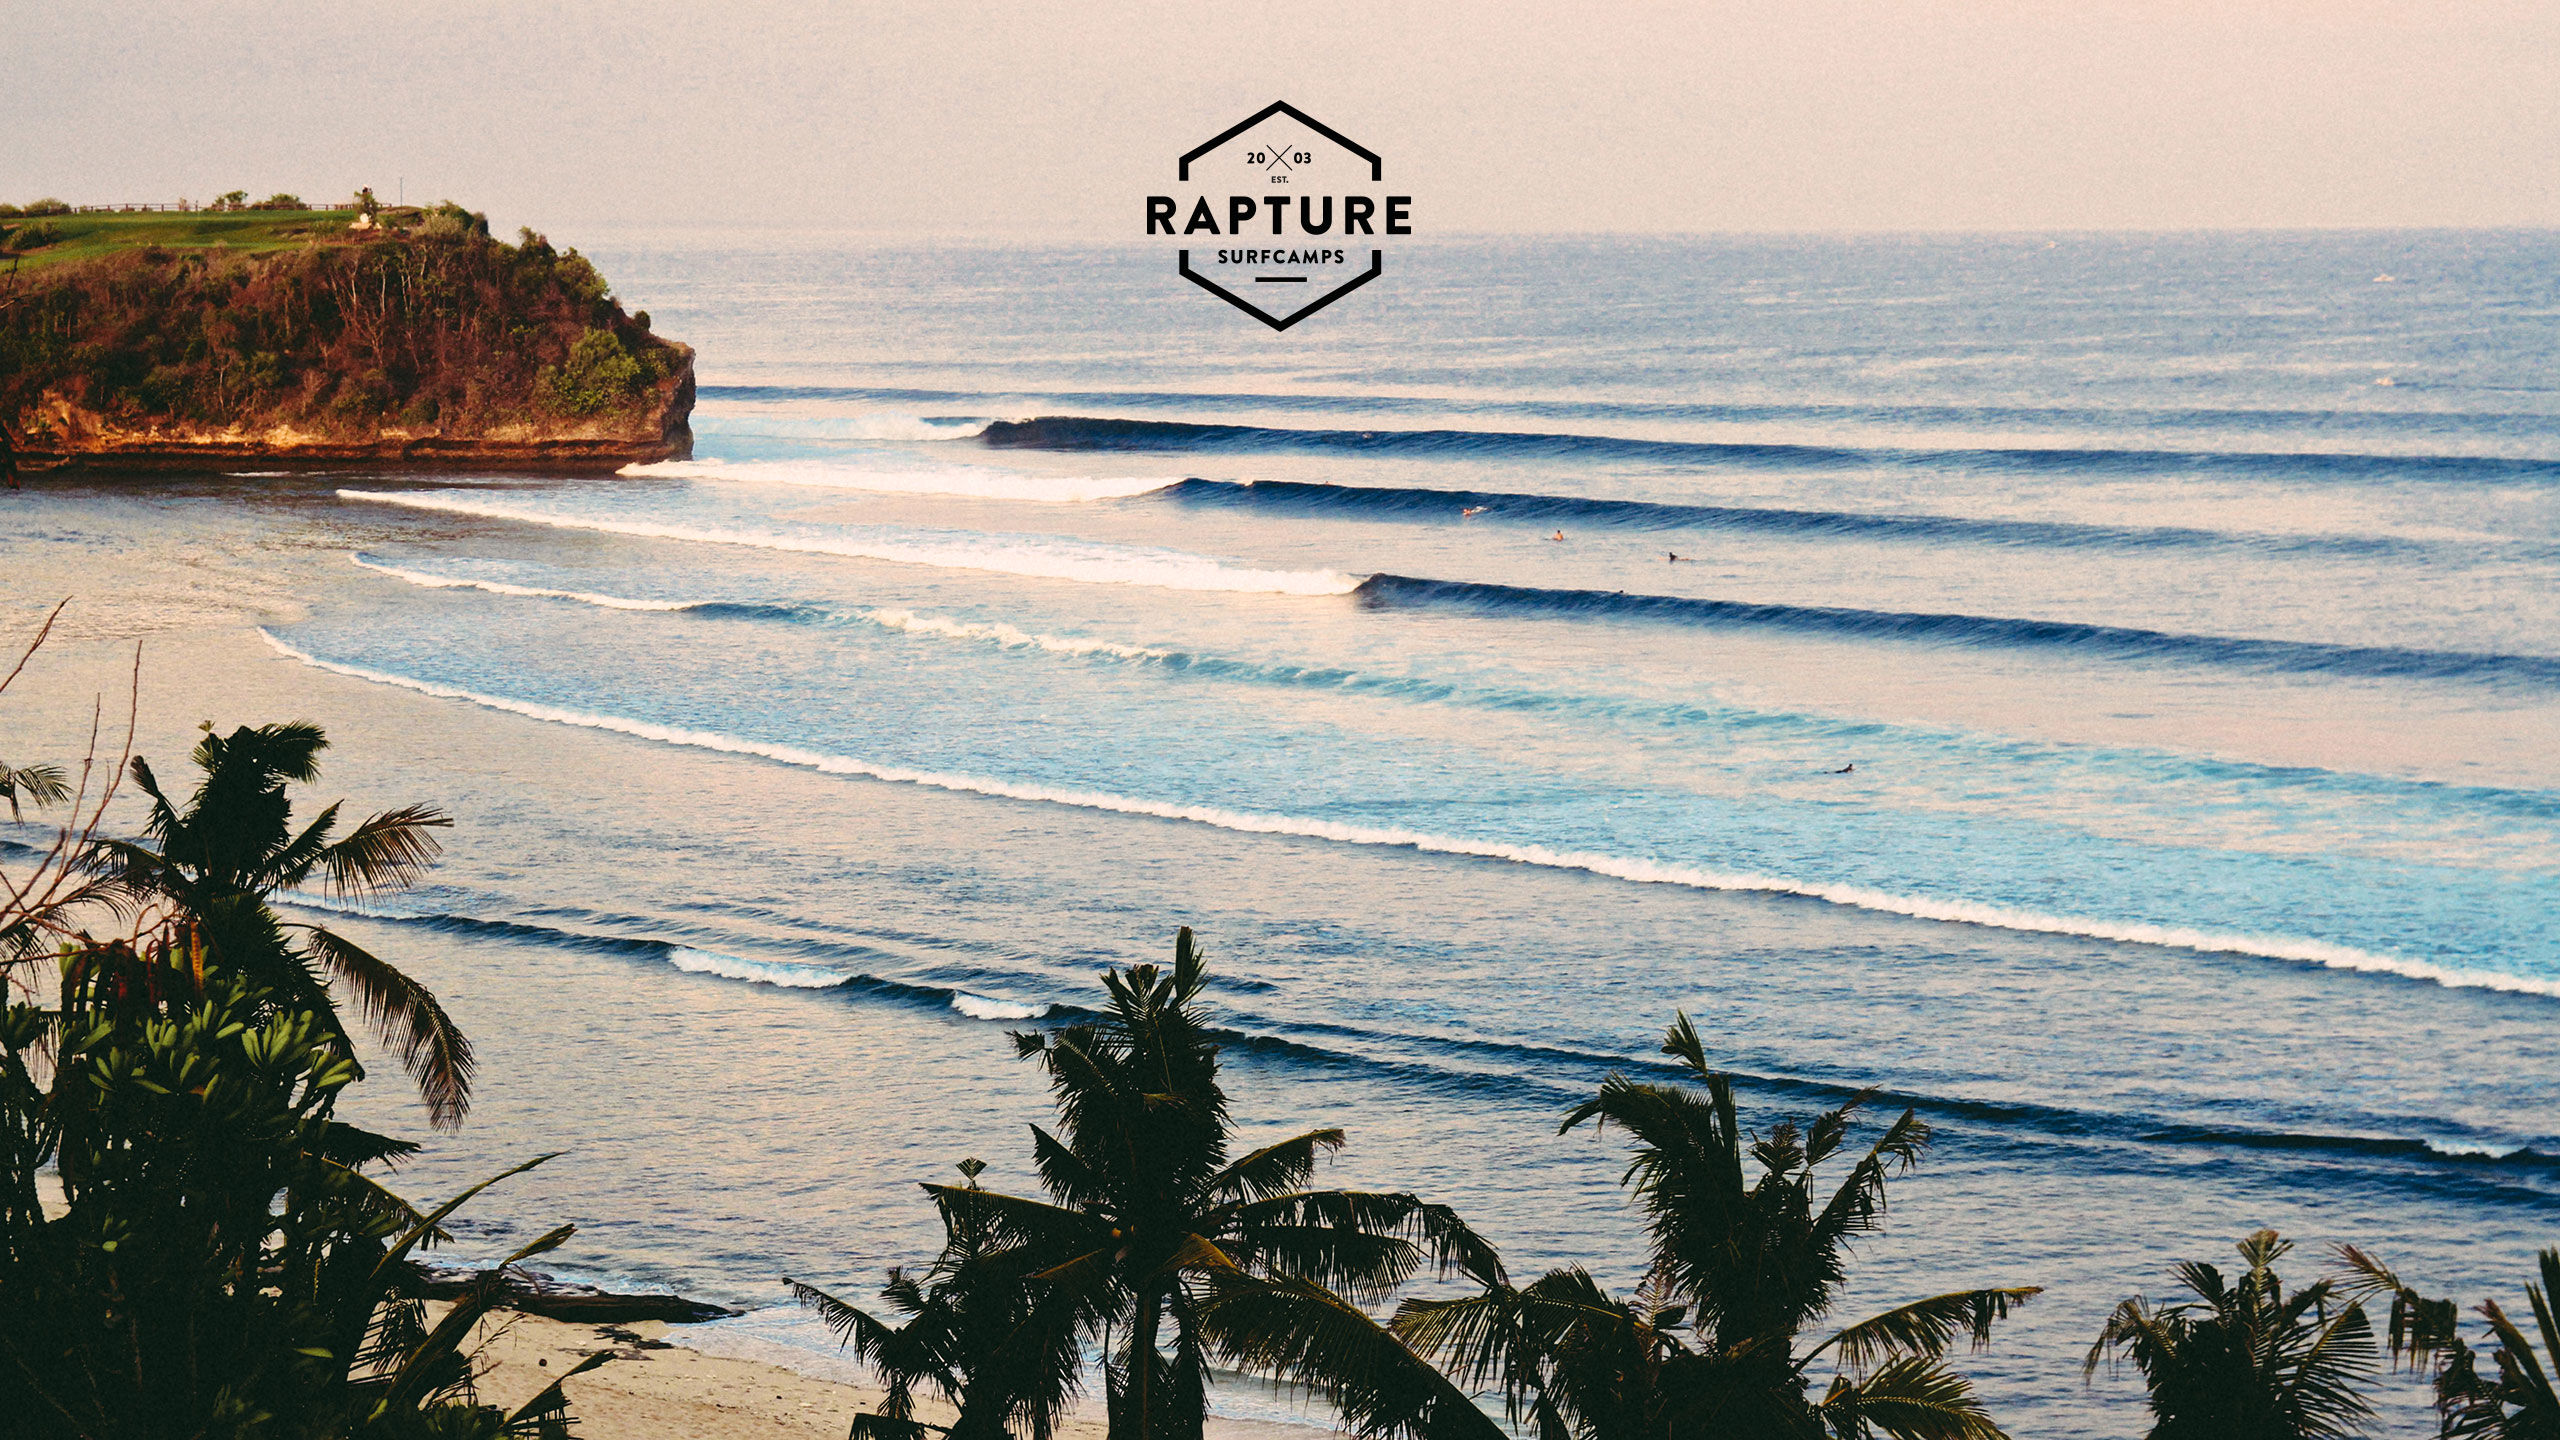 Rapture Surfcamps   Surfing Wallpapers 2560x1440